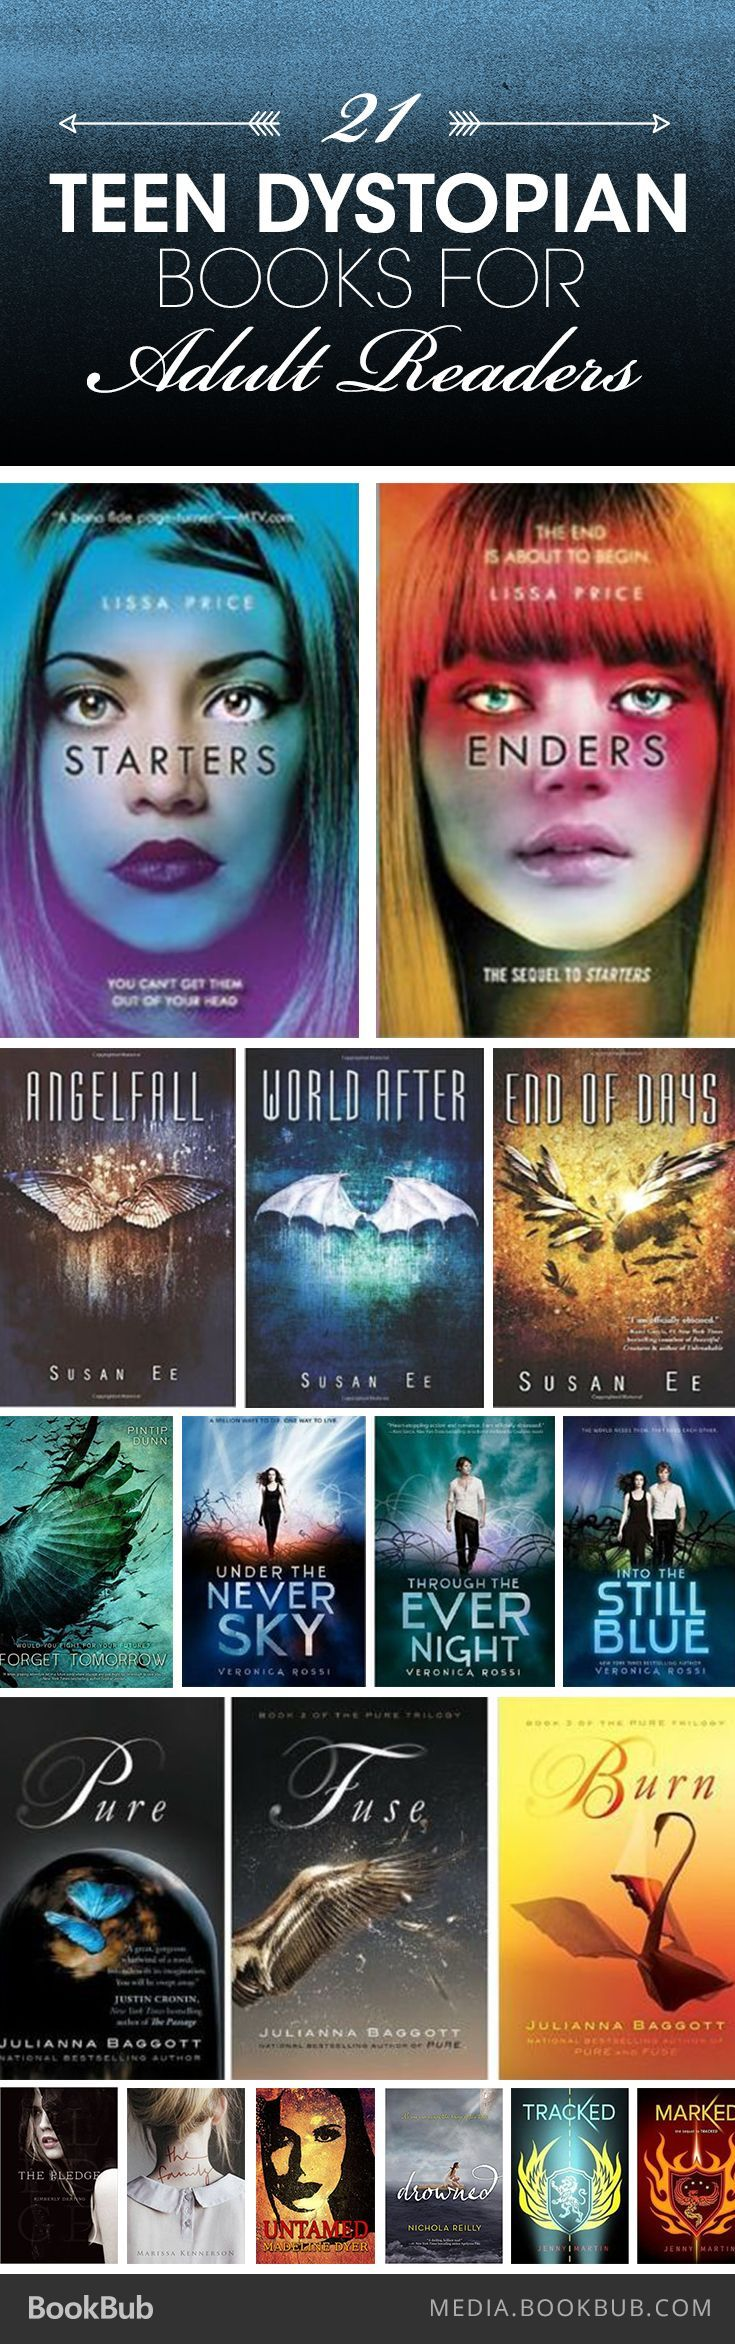 177 Best Young Adult Books Images On Pinterest-6462